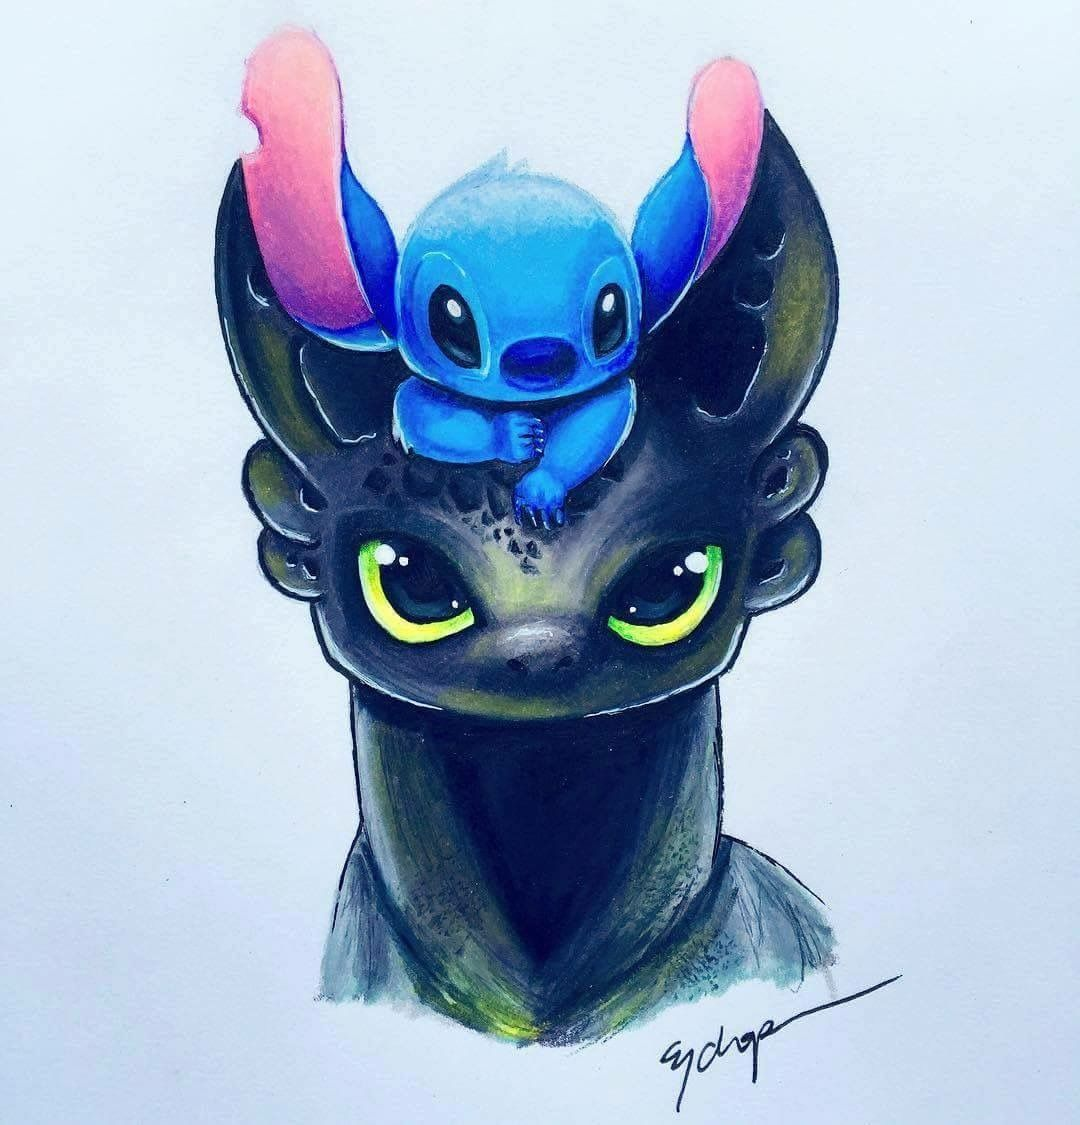 Epingle Par Moni Sur Lilo And Stitch Dessin Animaux Mignons Dessins Mignons Dessin Anime Kawaii